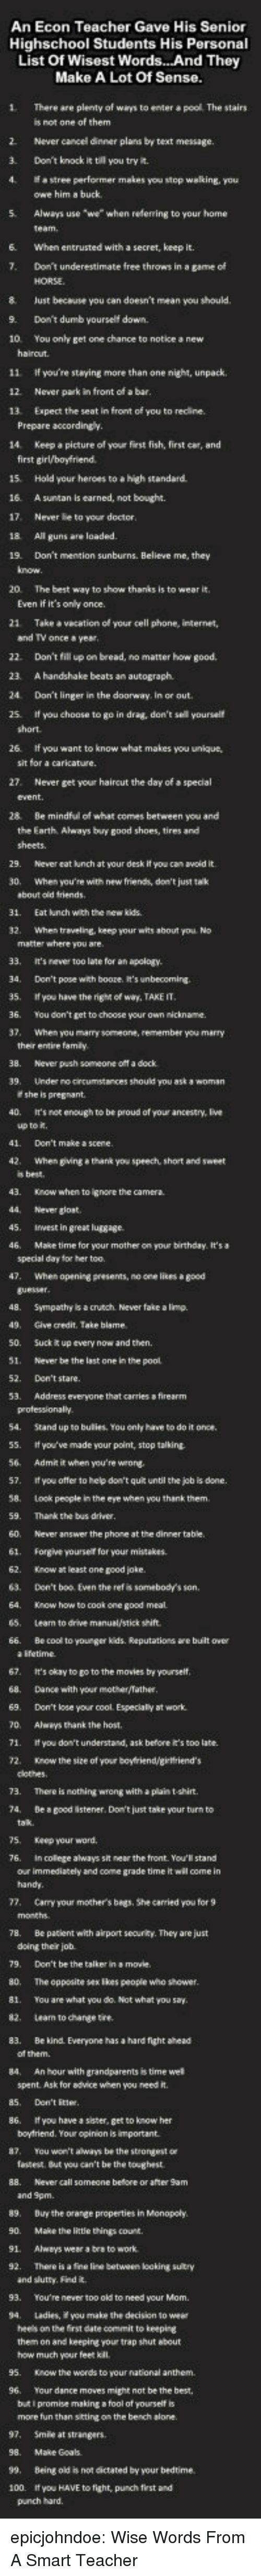 Advice, Being Alone, and Anaconda: An Econ Teacher Gave His Senior  Highschool Students His Personal  List Of Wisest Words..And They  Make A Lot Of Sense.  1 There are plenty of ways to enter a pool The stairs  is not one of them  2 Never cancel dinner plans by text message.  3. Don't knock it till you try it  4. a stree performer makes you stop walking, you  owe him a buck  5  Always use we when referring to your home  6.  When entrusted with a secret, keep it.  7.  Don't underestimate free throws in a game of  HORSE.  8 lust because you can doesn't mean you should  9. Don't dumb yourself down.  10 You only get one chance to notice new  hairout.  11 If you're staying more than one night, unpack  12. Never park in front of a bar  13. Expect the seat in front of you to redine.  Prepare  14. Keep a picture of your first fish, first cer, and  first  15.  Hold your heroes to a high standard.  17 Never lie to your doctor  18 All guns are  19. Don't mention sunburns. Believe me, they  know.  20. The best way to show thanks is to wear it  Even if it's only once.  21  Take  and TV once  vacation of your cell phone, internet,  year  22.  Don't fill up on bread, no matter how good.  24  Don't linger in the doorway. in or out  25.  If you choose to go in drag, don't sell yourself  short.  26.  If you want to know what makes you unique,  sit for  27 Never get your haircut the day of a  special  28 Be mindful of what comes between you and  the Earth Ahways buy good shoes, tires and  sheets.  29. Never eat unch at your desk If you can avoid it  30. When you're with new friends, don't just tak  31. Eat unch with the new kids  32. When traveling, keep your wits about you No  33. It's never too late for an apology.  34. Don't pose wth boore. It's unbecoming.  5. If you have the right of way, TAKE IT  36. You don't get to choose your own nickname.  37, When you marry someone, remember you marry  39.  Under nocrcumstances should you ask ง woman  40. it'snot enough to be proud of your ancestry, ive  up to t  41. Don't make a  42. When giving a thank you speech, short and sweet  44. Never glost  46. Make time for your mother on your birthday. It'sa  special day for her too  47. When opening presents, no one lices &a good  guesver  48. Sympathy Is a crutch Never take ล limp.  49, Give credit, Take biame  50. Suck it up every now and then.  51. Never be the last one in the pool  52. Don't stare.  53. Address everyone that carries a firearm  54. Stand up to bulies, You only have to do it once.  55. fyoul've made your point, stop talking  56. Admit it when you're wrong  7. it you offer to help don't quit until the job is done  58. Look people in the eye when you thank them  60. Never answer the phone at the dinner table.  61. Forgive yoursef for your mistakes.  62. Know at least one good joke.  63. Don't boo Even the ref is somebody's son  one good meal  65,  Leam to drive manual/stick shift.  66. Be cool to yourger kids. Reputations are built over  67. It's okay to po to the movies by yourself  68. Dance with your mother/Tather  69. Don't lose your cool. Especialy at work  0. Always thank the host  71. It you don't understand, ask before it's too late.  72. Know the size of your boyfriend girtriend's  73 There is nothing wrong with a plain t shirt.  74. De a good ästener. Don't just take your turn to  5. eep your word,  76.  In colege always sit near the front. You'll stand  our immediately and come grade time it will oome in  handy.  7. Carry your mother's begs, She carried you for 9  78. Be pacient with arport security. They are just  79. Don't be the talker in a movie.  80. The oppesite svex ikes people who shower.  81. You are what you da. Nat what you say  82. Learn to change tire  83. Be kind Everyone has a hard fight ahead  84.  An hour with grandparents is time we  spent. Ask for  advice when you need it  Don't itter  86,  tf you have ฮ sister, get to know her  87. You won't always be the strongest or  fastest. But you can't be the toughest  89. Duy the orange properties in Monopoly  90. Make the littie things count.  91  92. There is a fine line between loaking suitry  and slutty. Find it  93.  94.  You're never too old to need your Mom.  Ladies,  2 you make the decision to wee  hees on the first dste commit to keeping  them on and keeping your trap shut about  how much your feet kil  96.  Your dance moves might not be the best.  but i promise making a fool of yourself is  more fun than sitting on the bench alone  99. Being old is not dictated by your bedtime  100. If you HAVE to fight, punch first and  punch hard. epicjohndoe:  Wise Words From A Smart Teacher